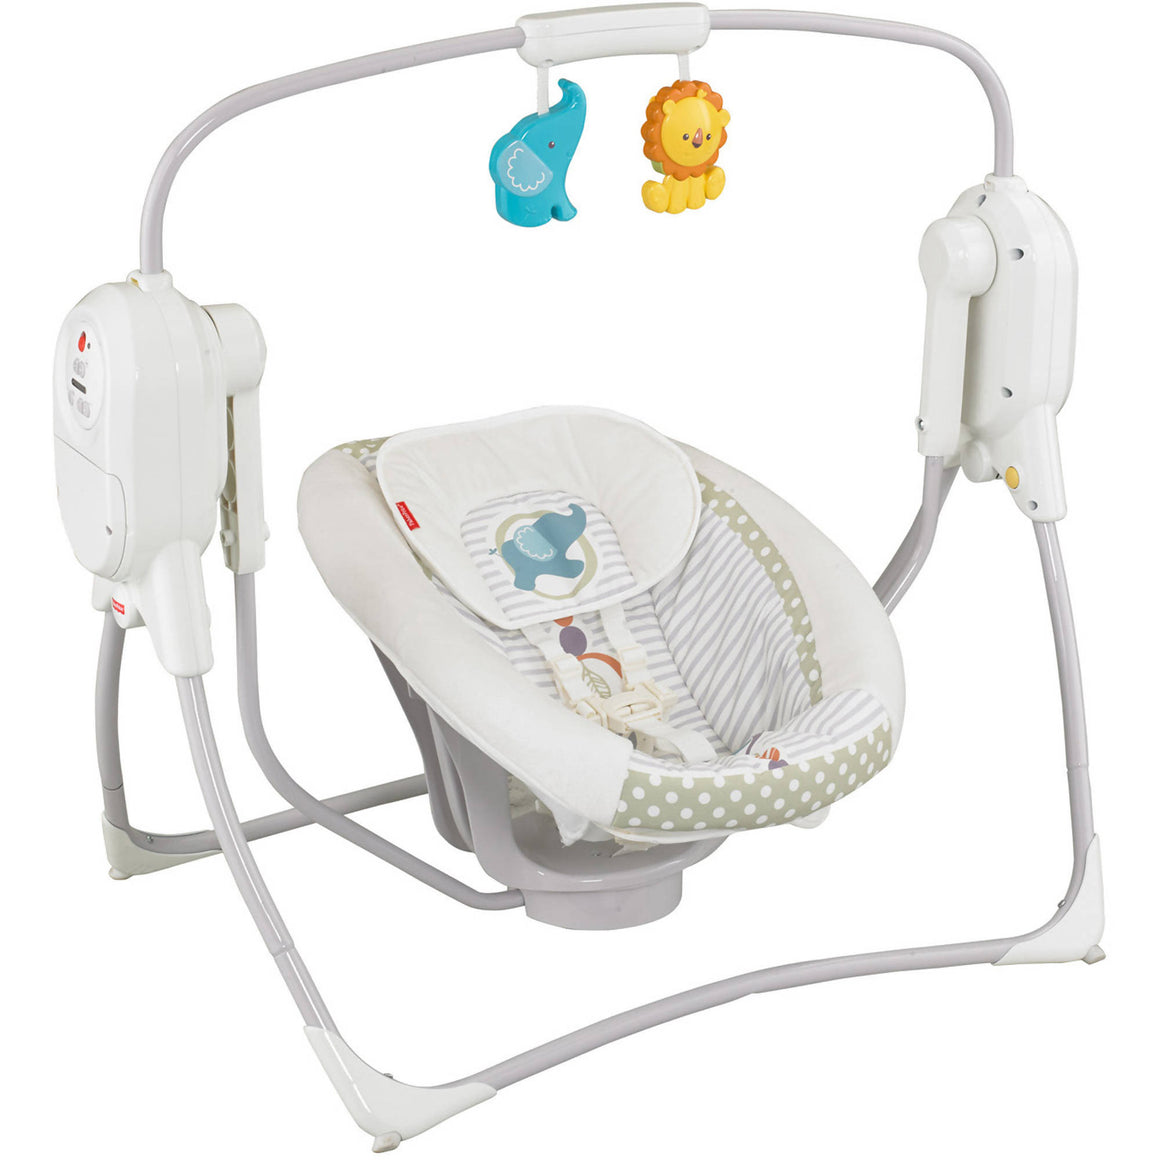 Fisher Price SpaceSaver Cradle n Swing